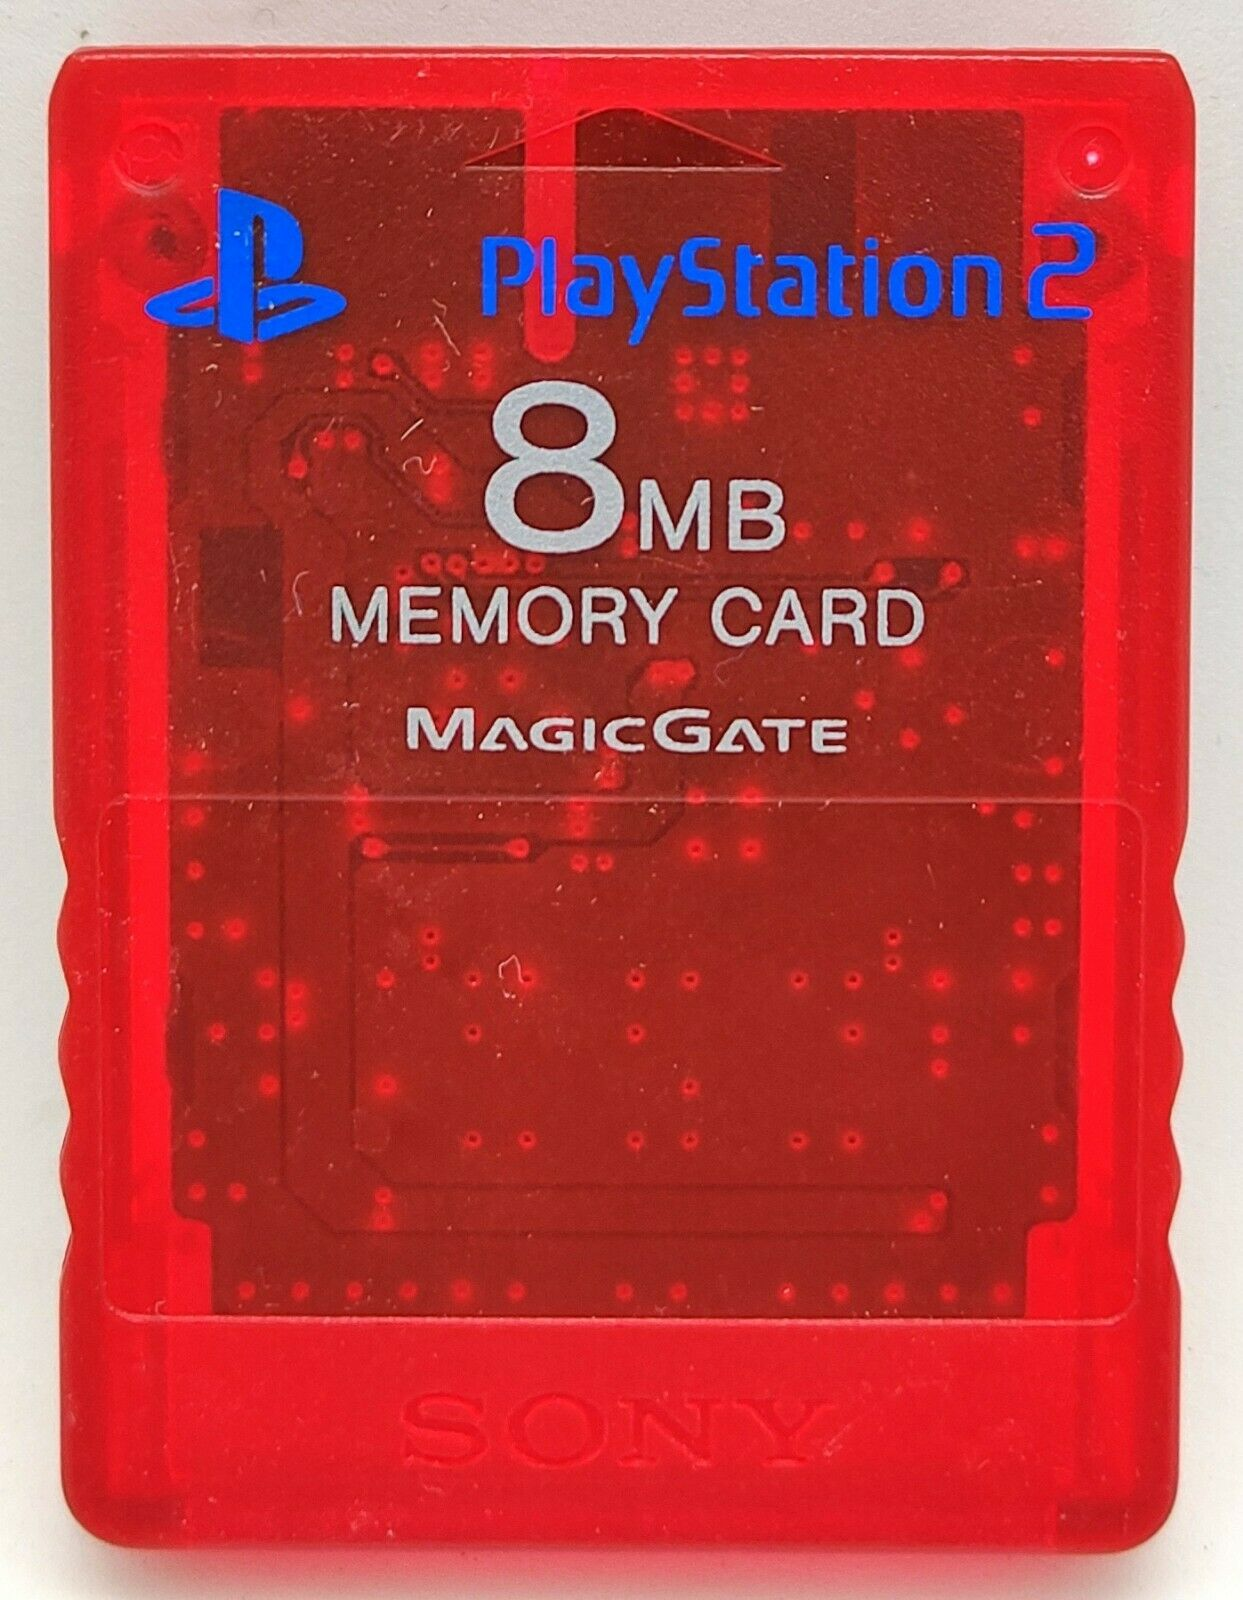 Official Genuine Clear Red Magic Gate Memory Card for Sony PlayStation 2 PS2 8MB